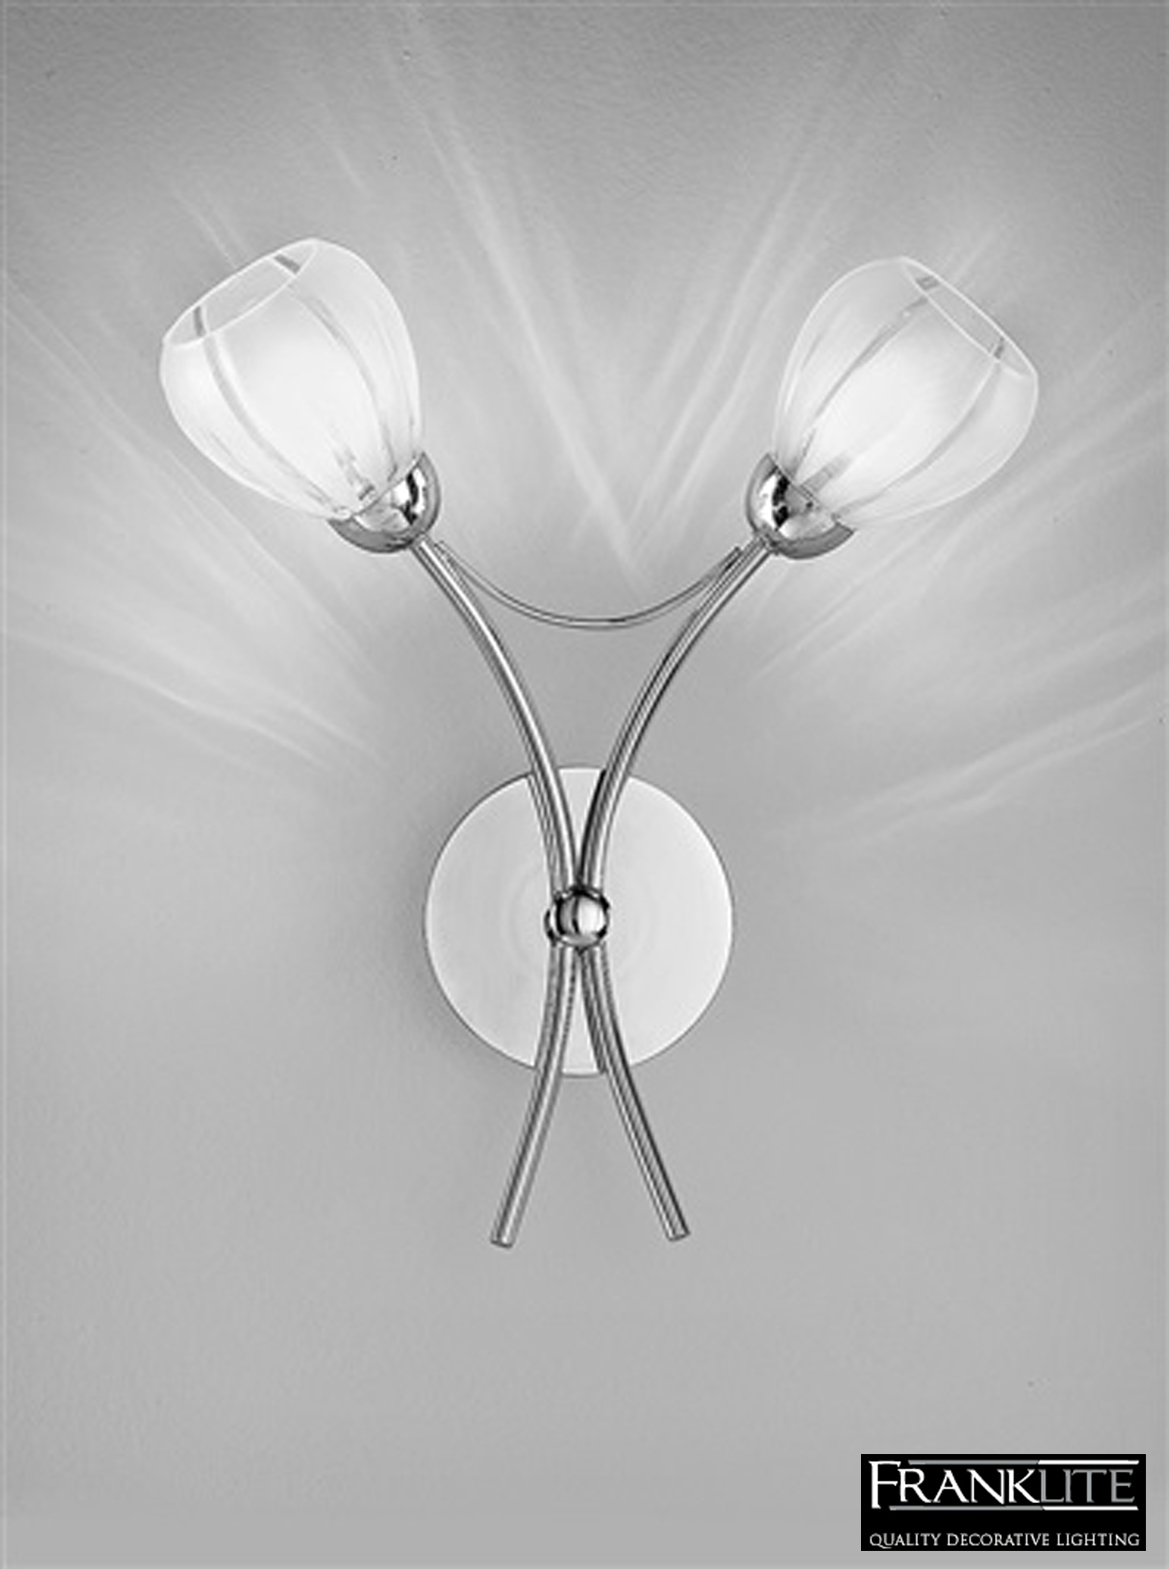 Franklite Chloris Chrome Amp Frosted Glass 2 Light Wall